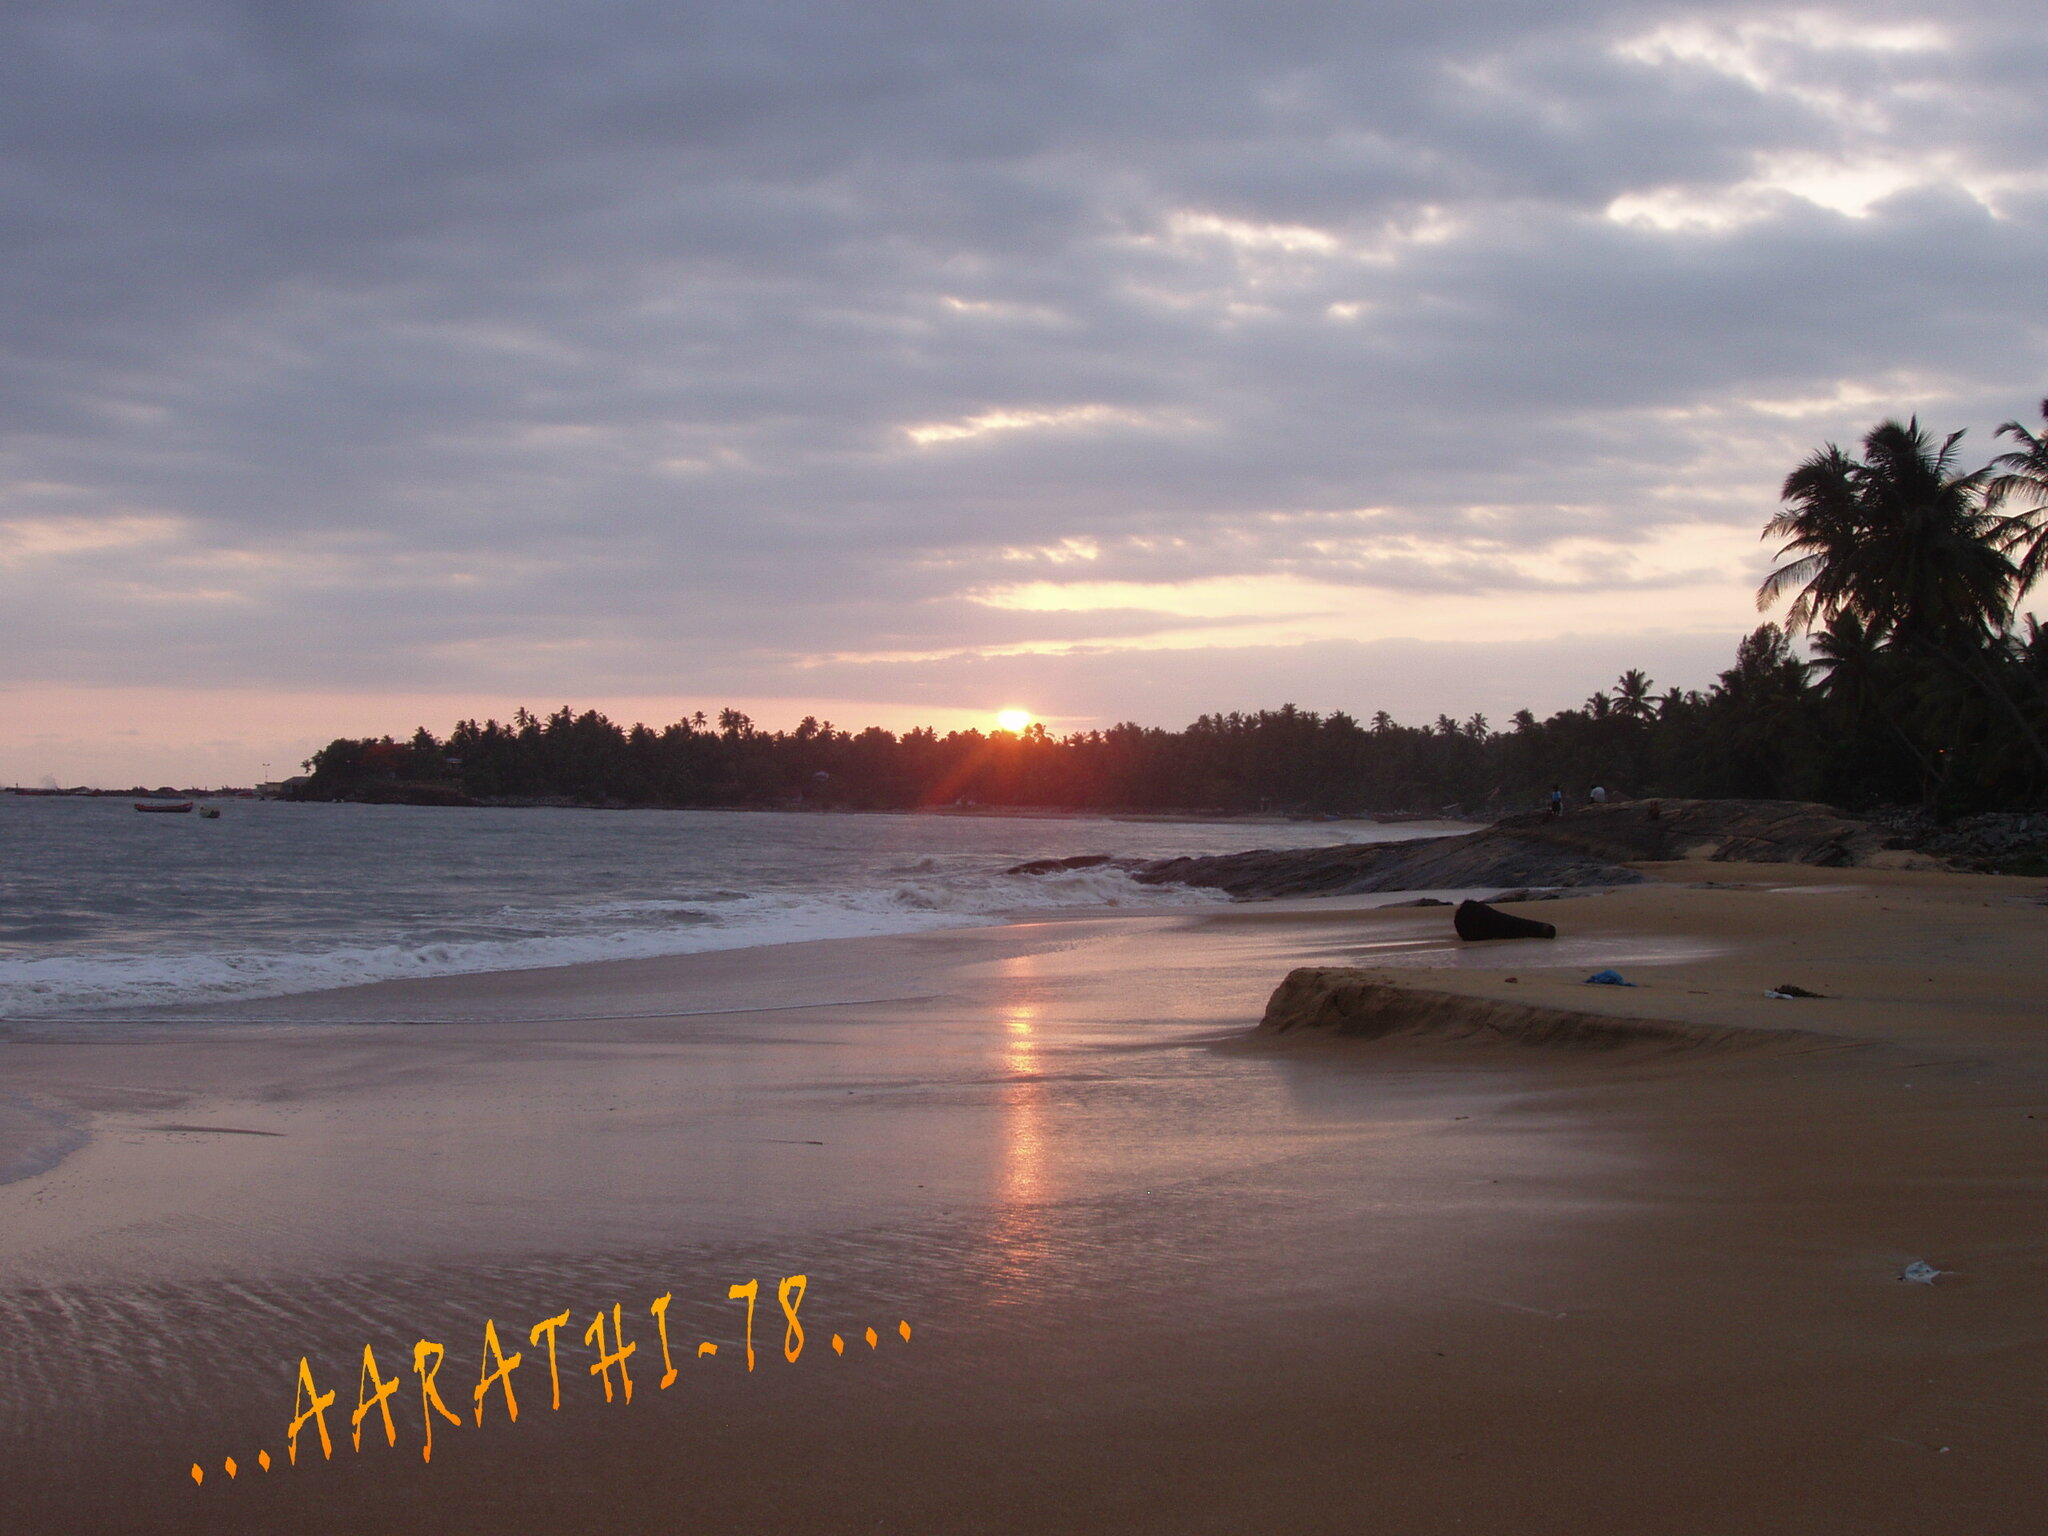 Sunset @ Thalayyi Beach - Tellicherry